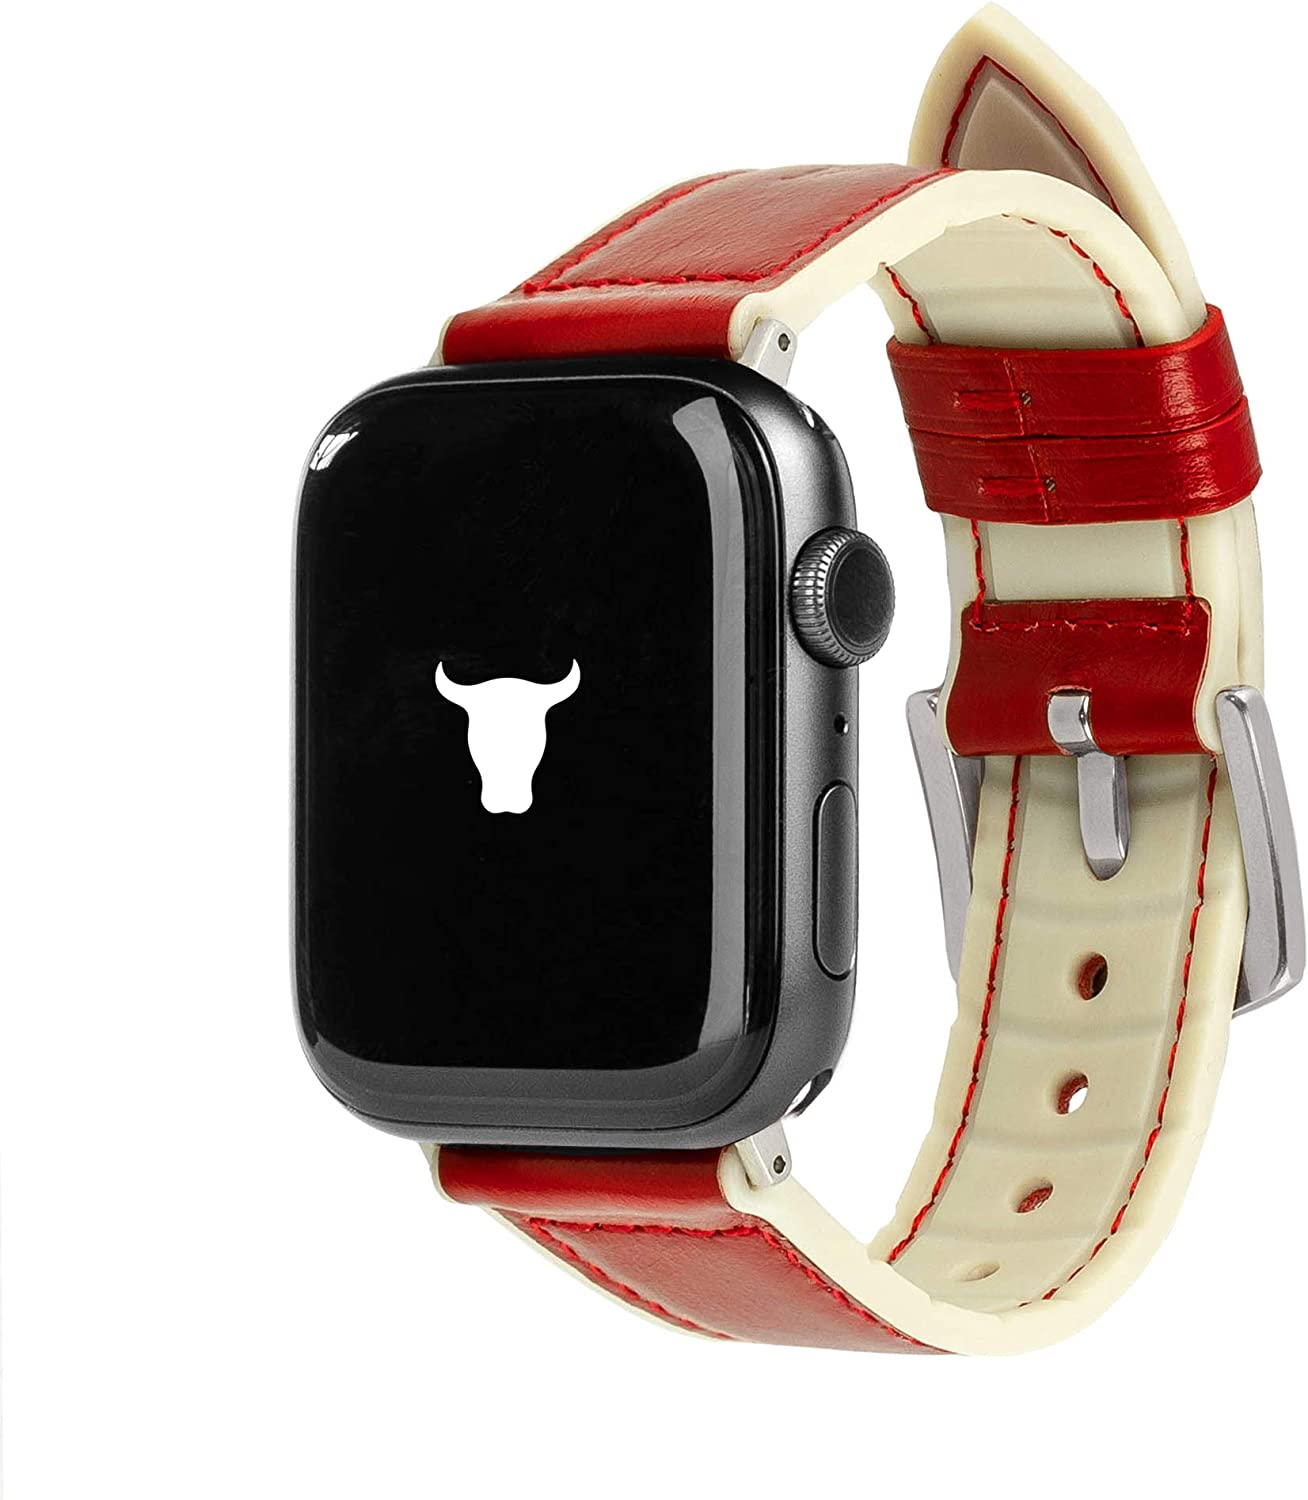 TORRO Leather Watch Strap Compatible with Apple Watch with Brushed Silver Connector and Buckle (Cream Silicone with Red Leather for 38mm / 40mm Apple Watch)